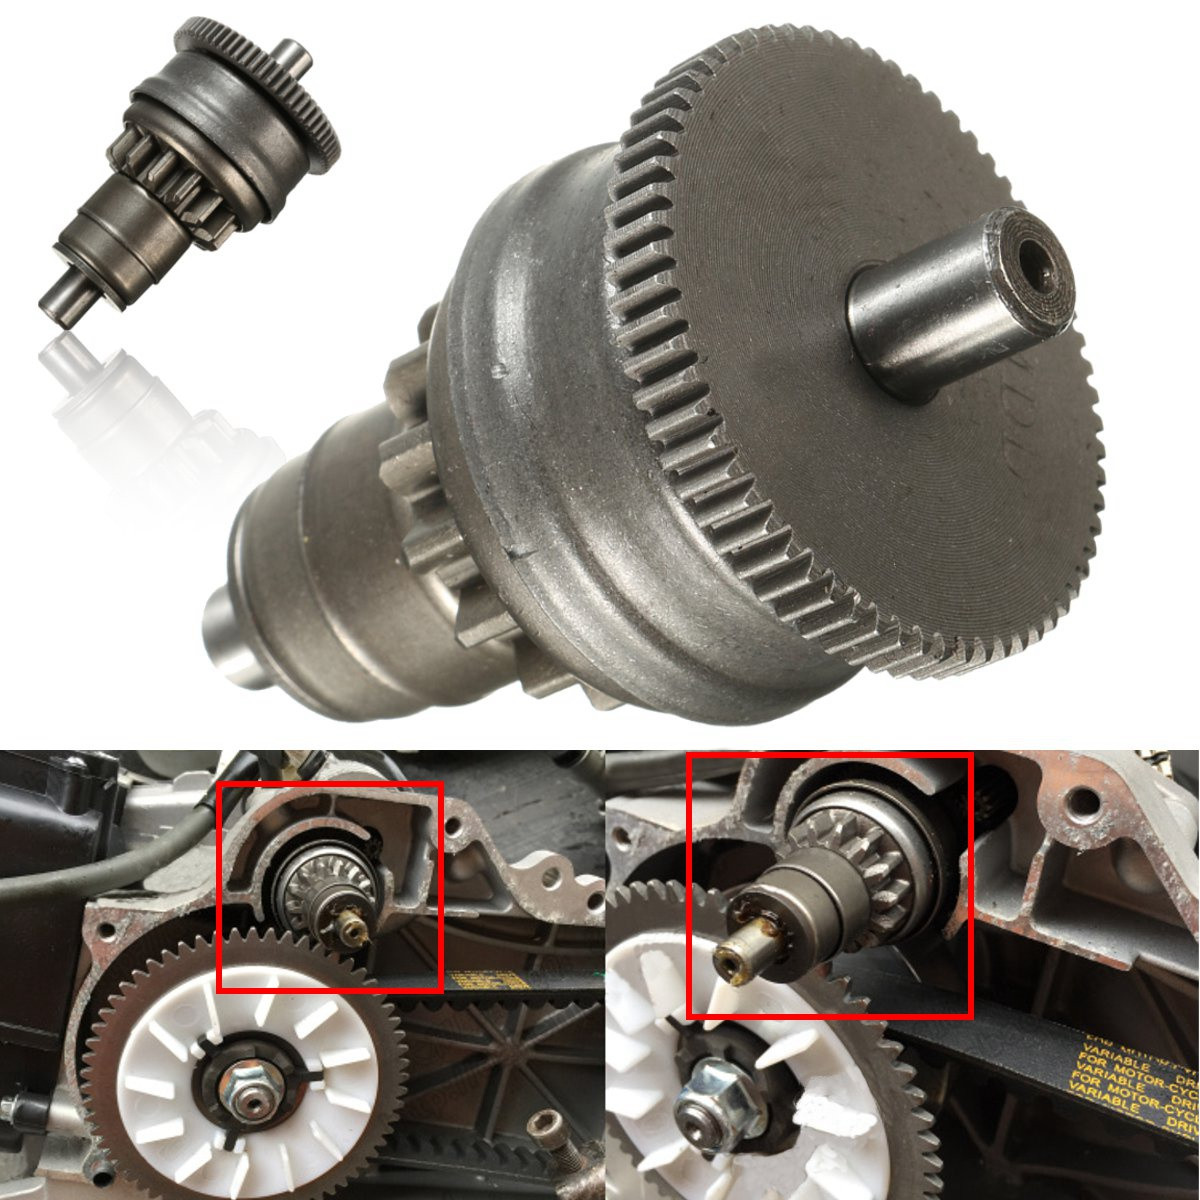 Starter Motor Clutch Gear Assembly For GY6 49cc 50cc 139QMB Scooter Mopeds ATV